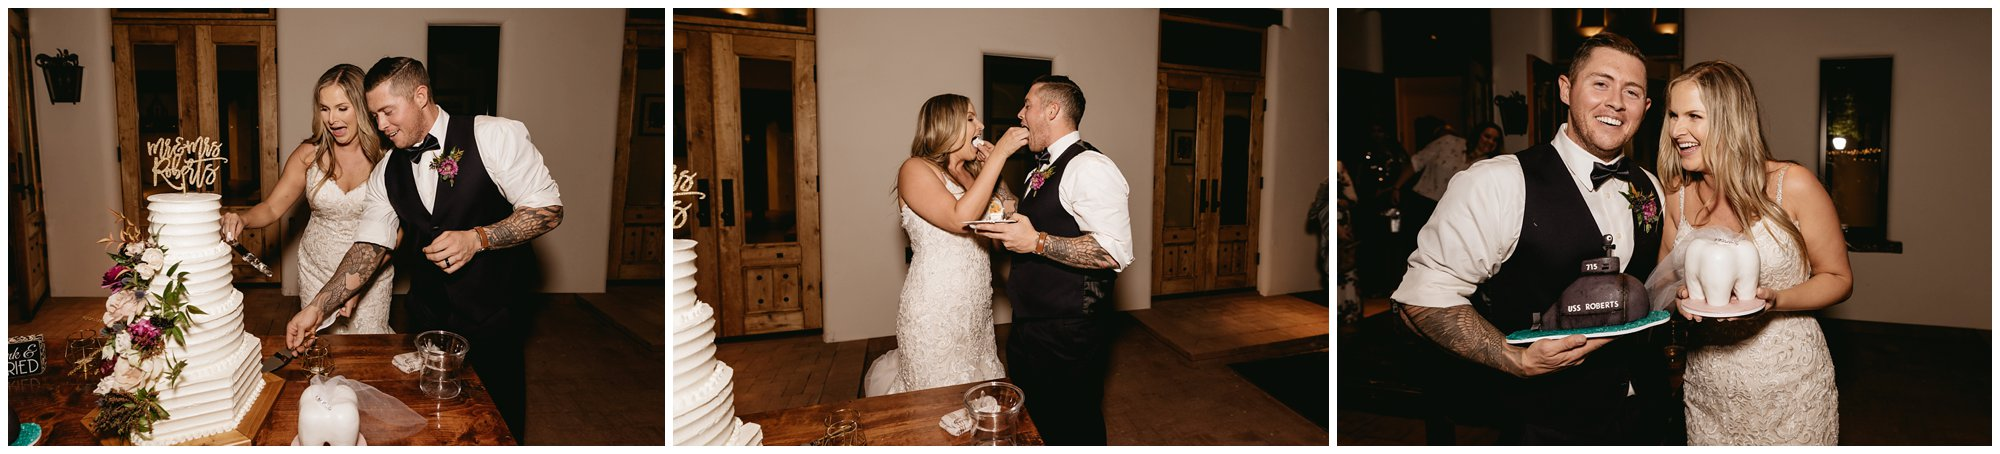 Arizona Wedding Photographer - Roberts Wedding_0067.jpg